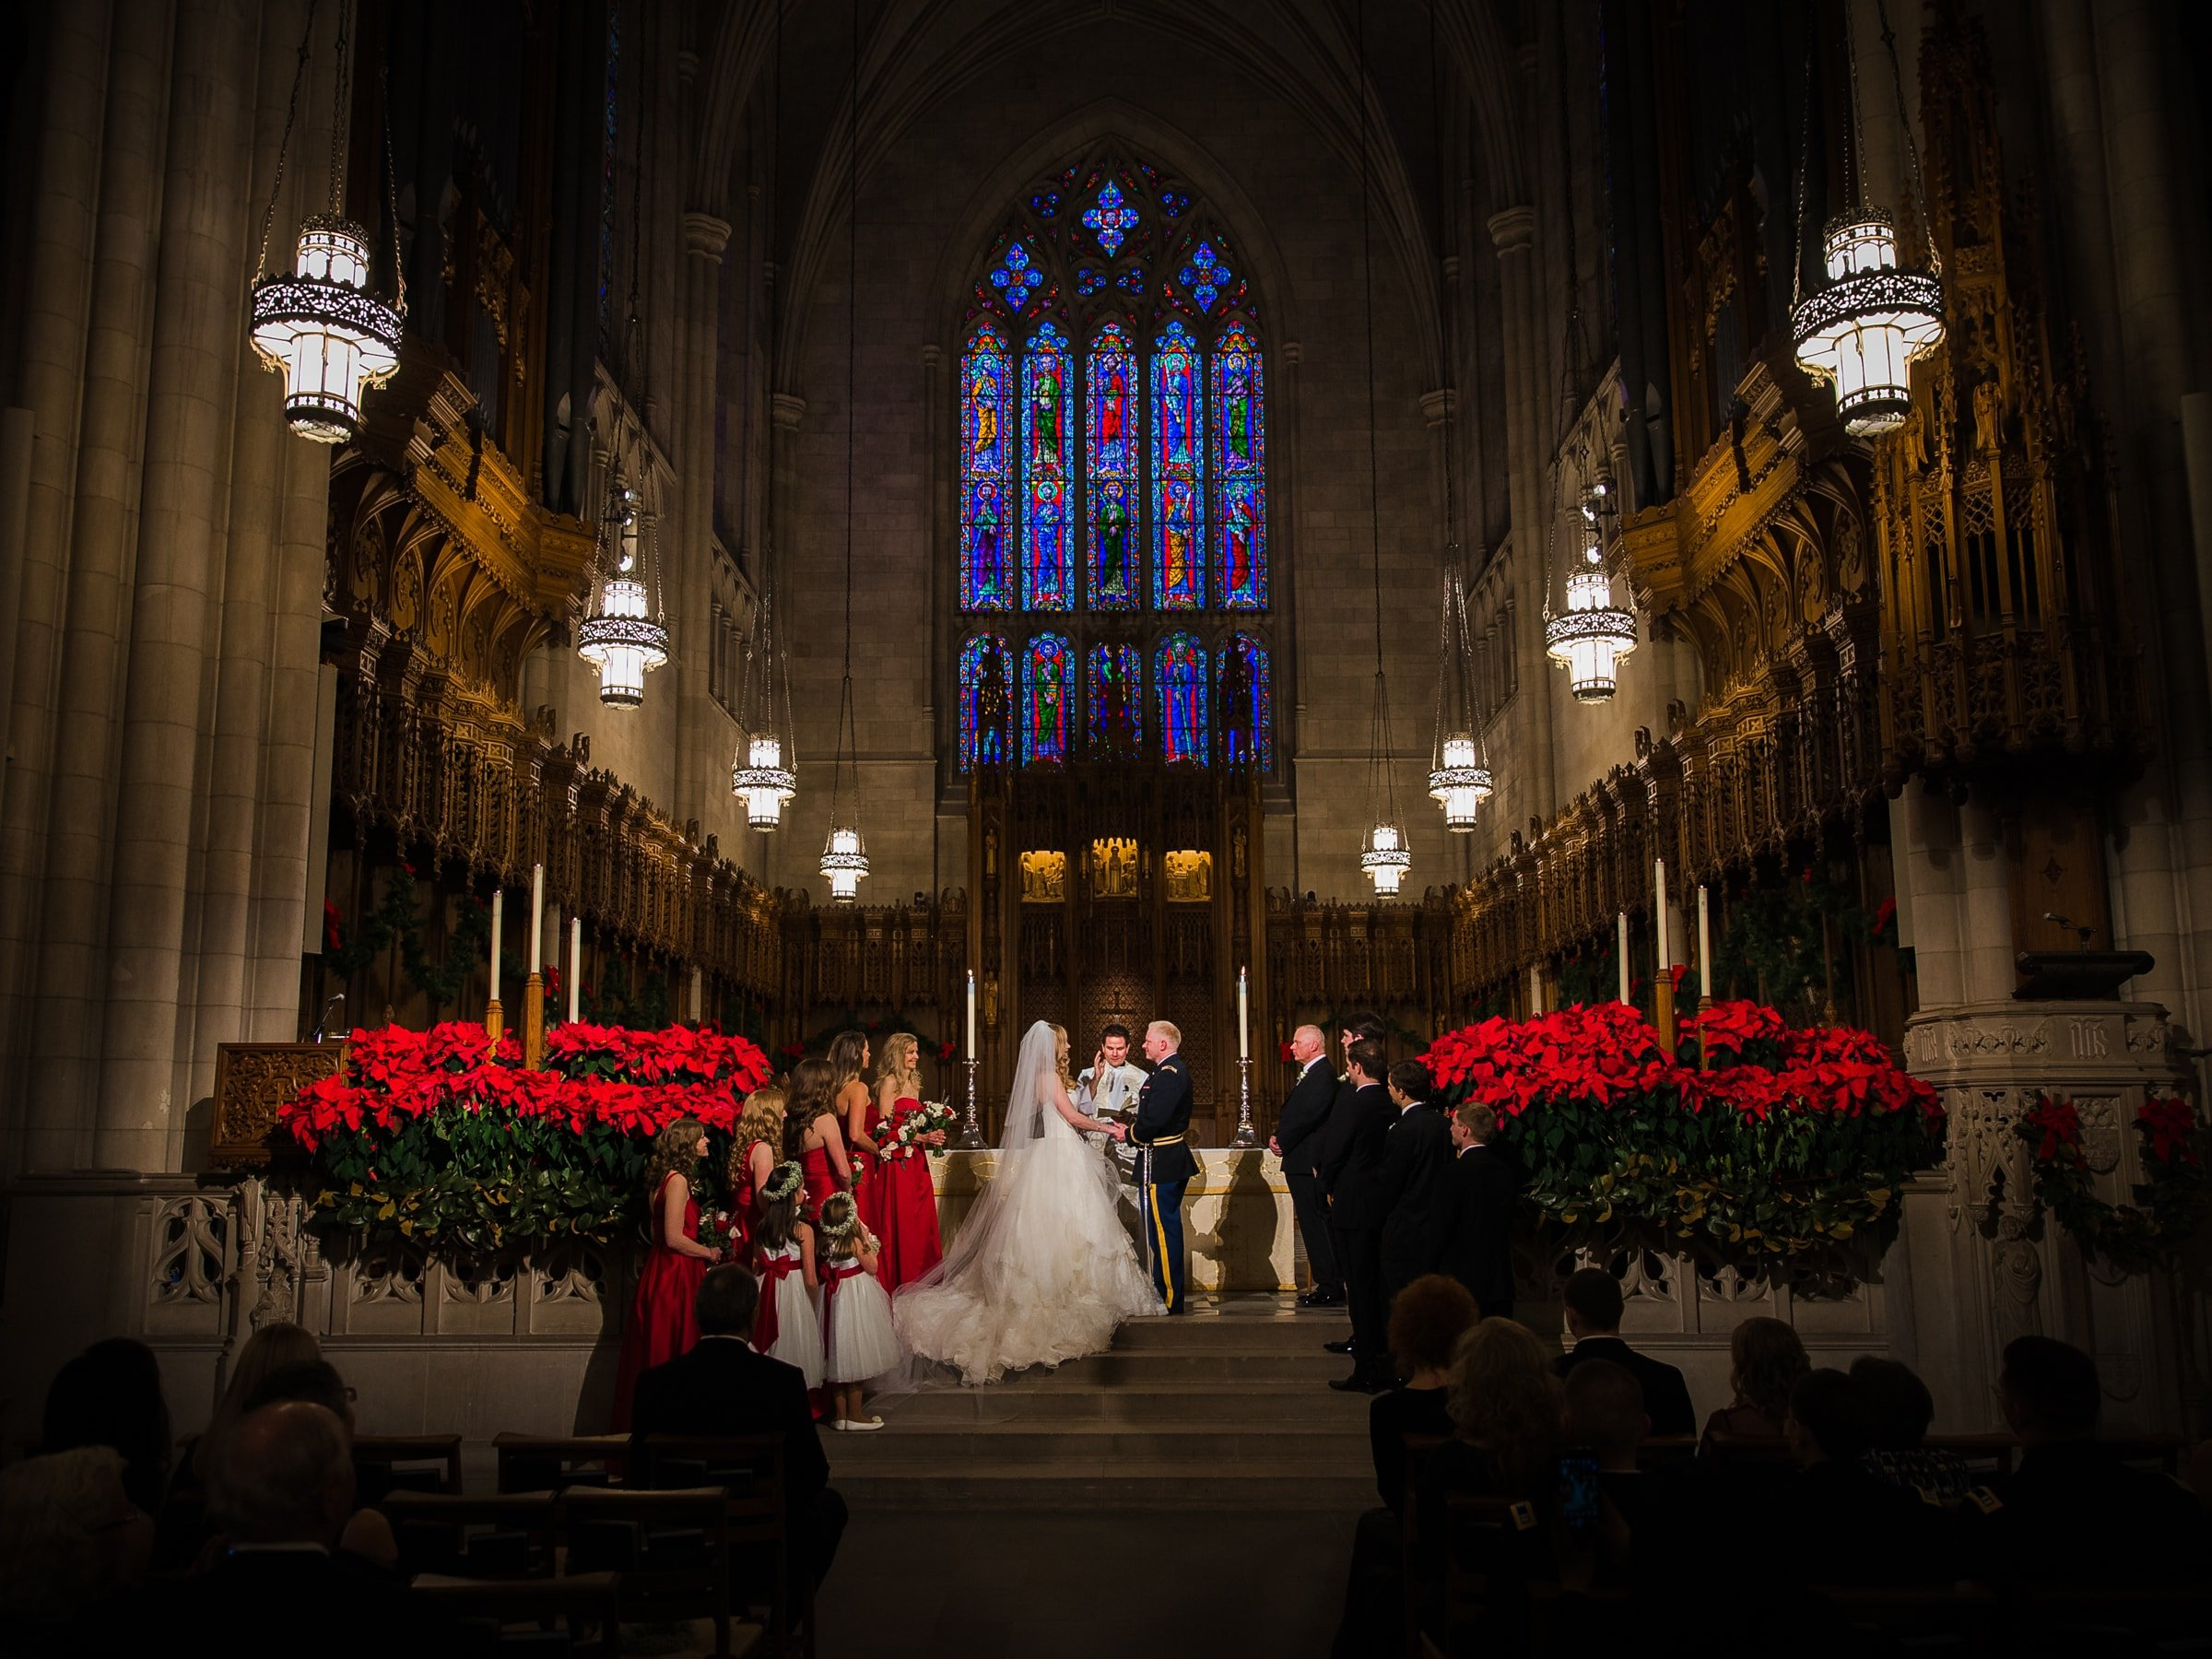 Duke Chapel Weddings - Christmas Ceremony with Red Poinsettias & Stained Glass Window